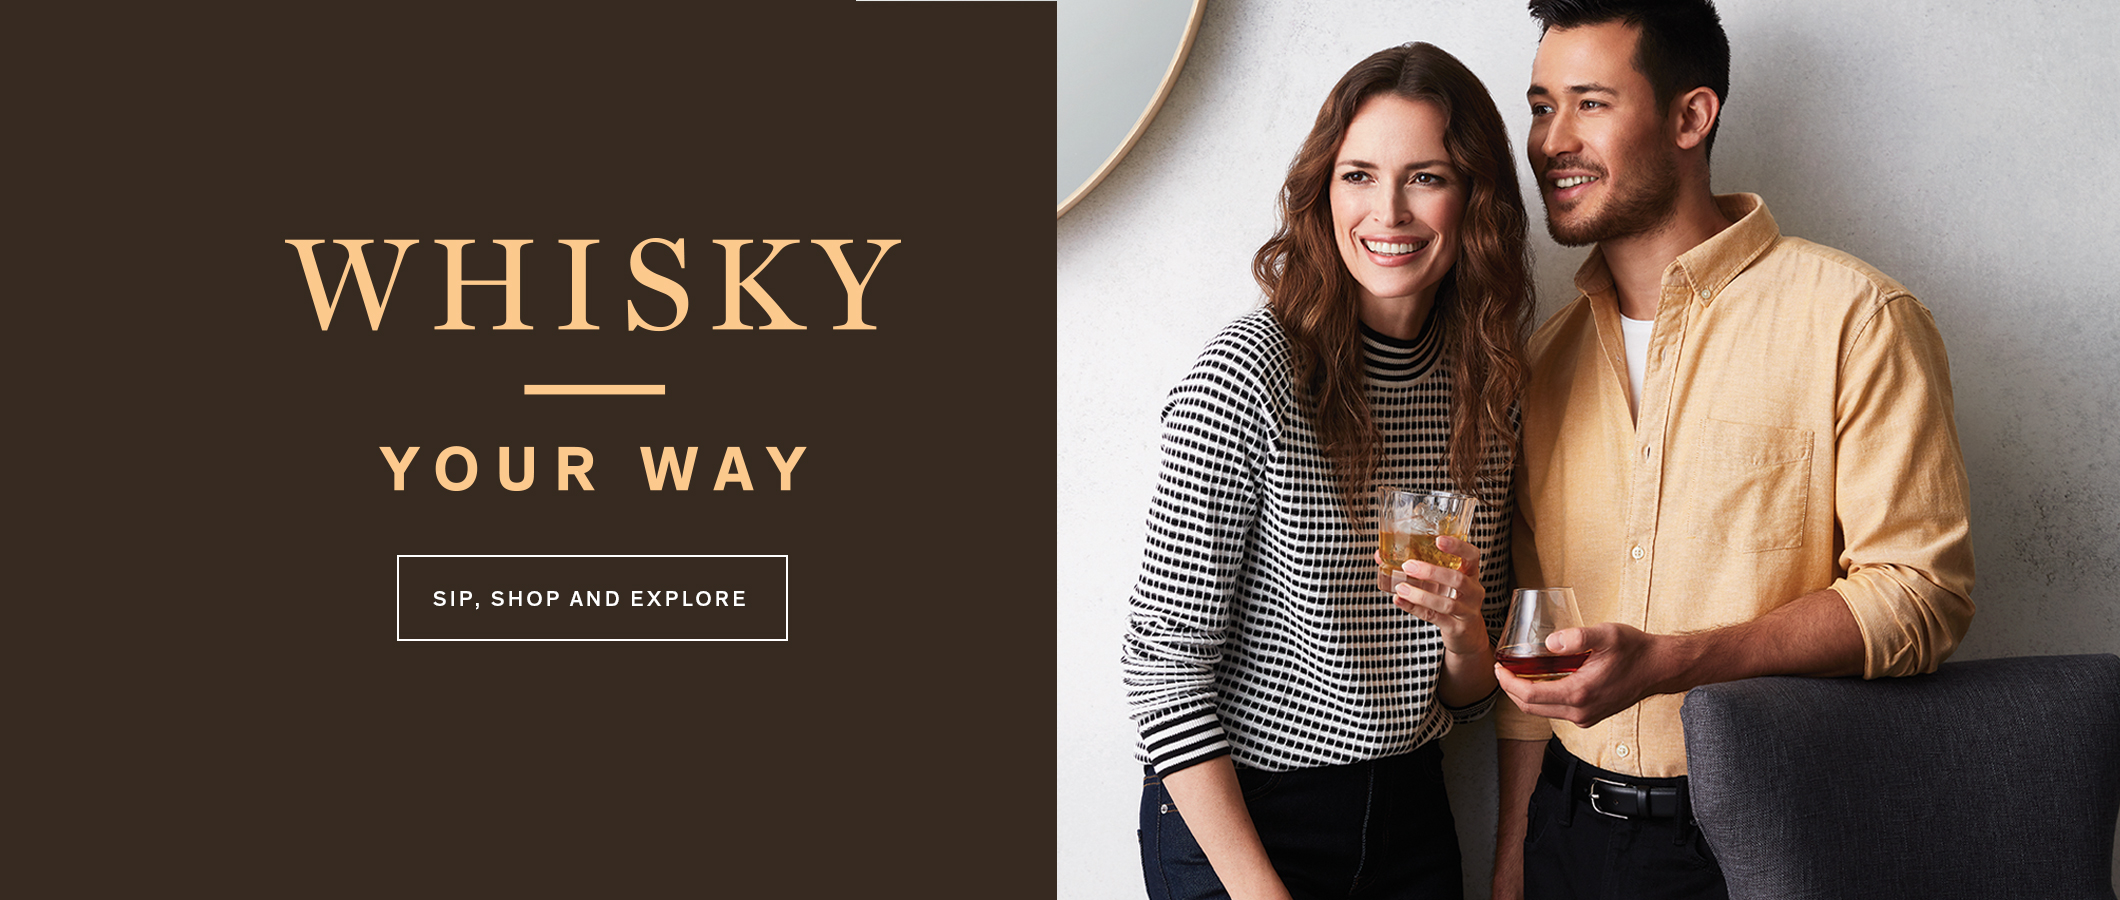 Whisky Your Way.  SIP, SHOP AND EXPLORE